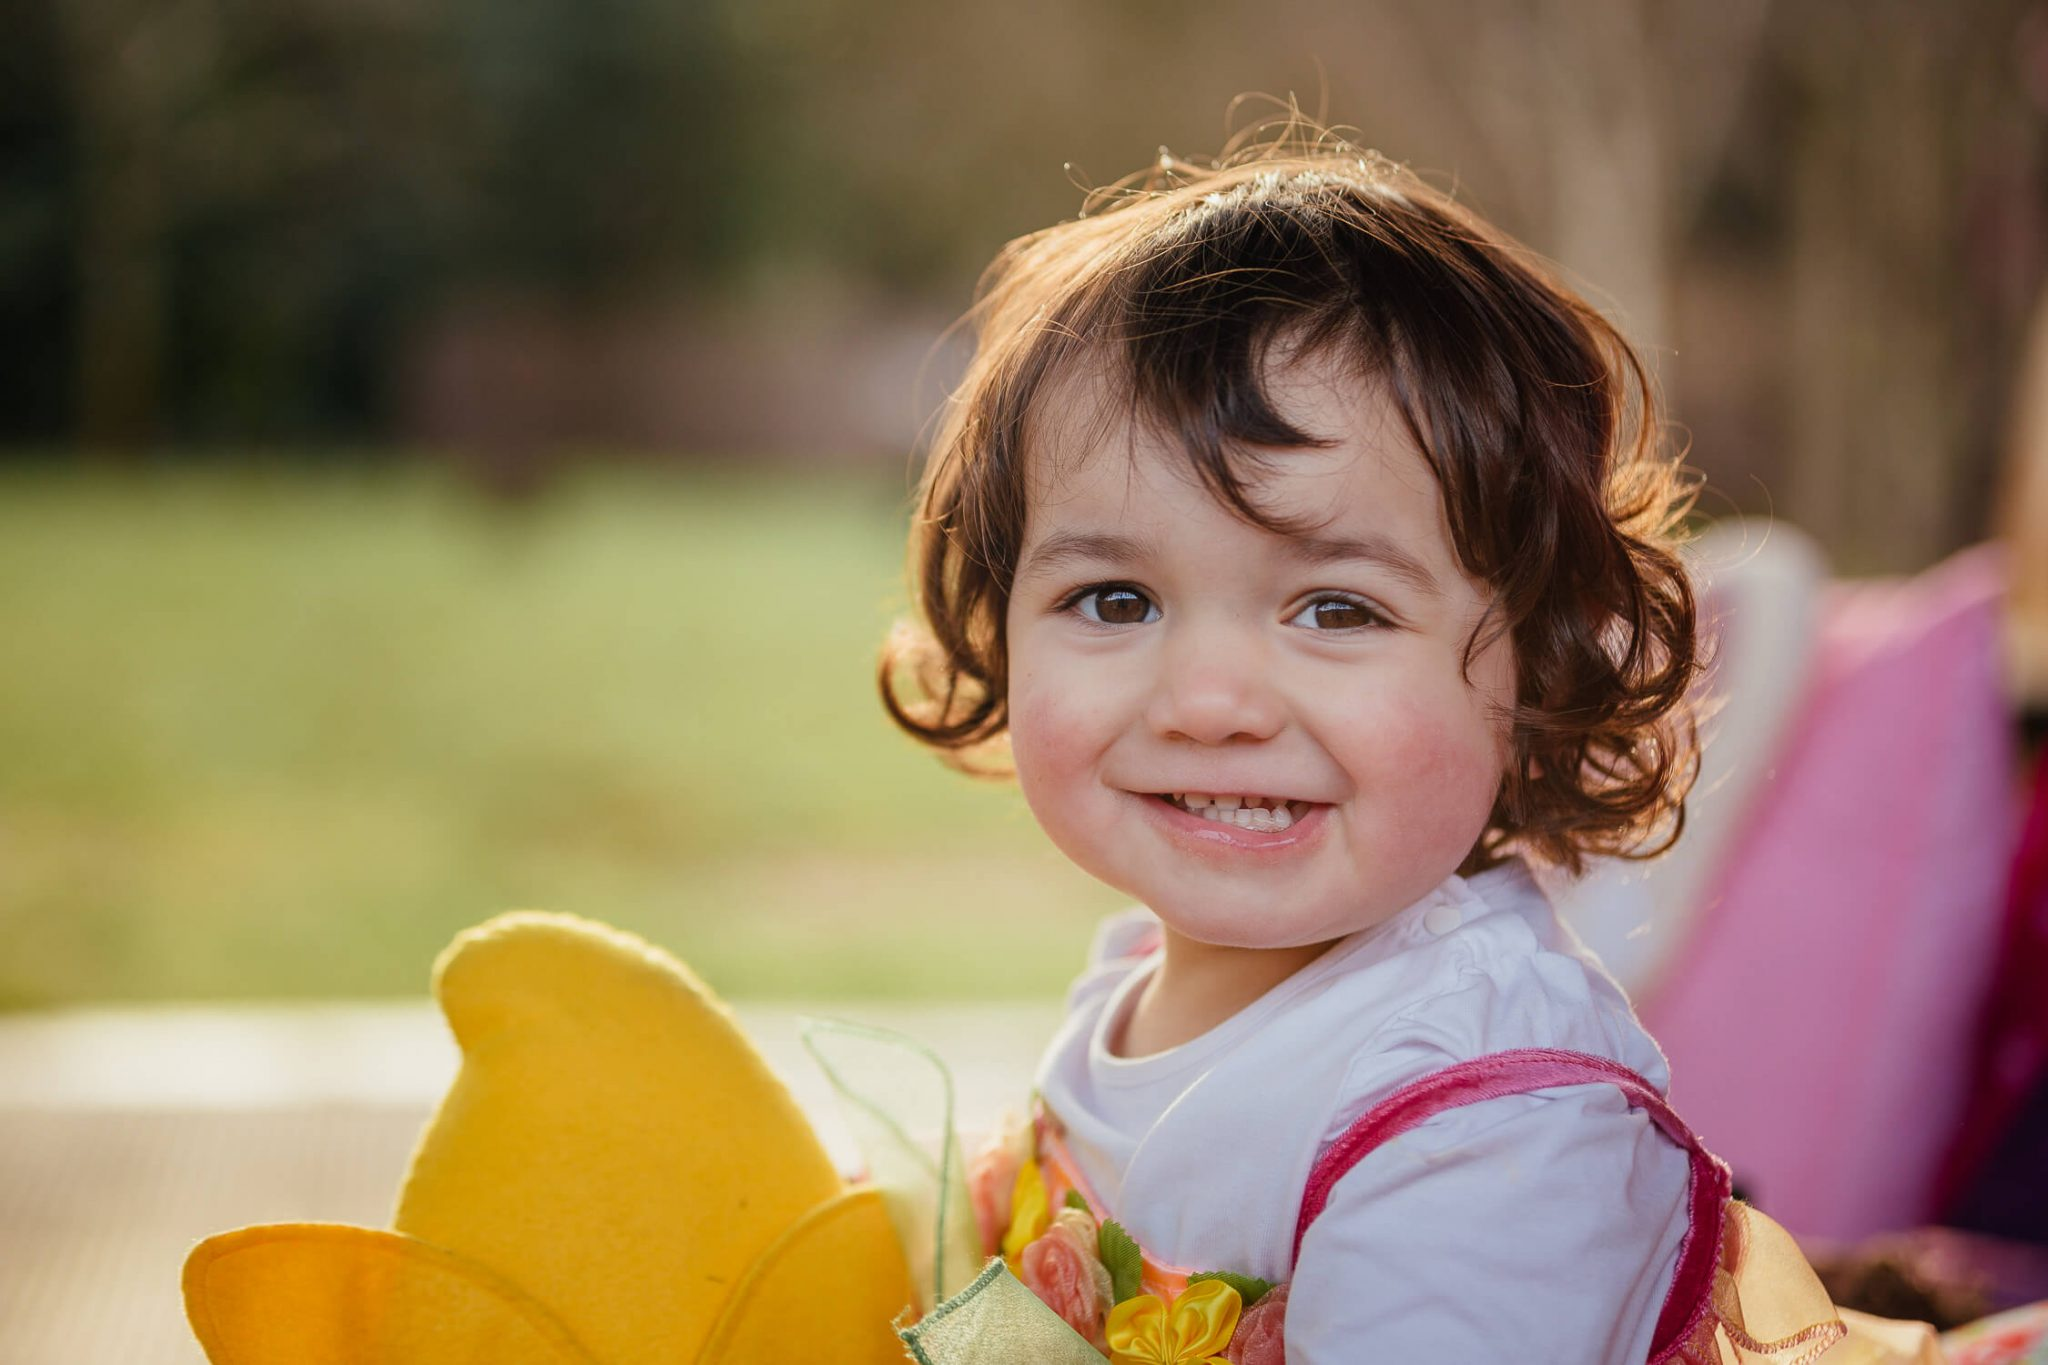 family photoshoot in pollok park glasgow young girl smiling